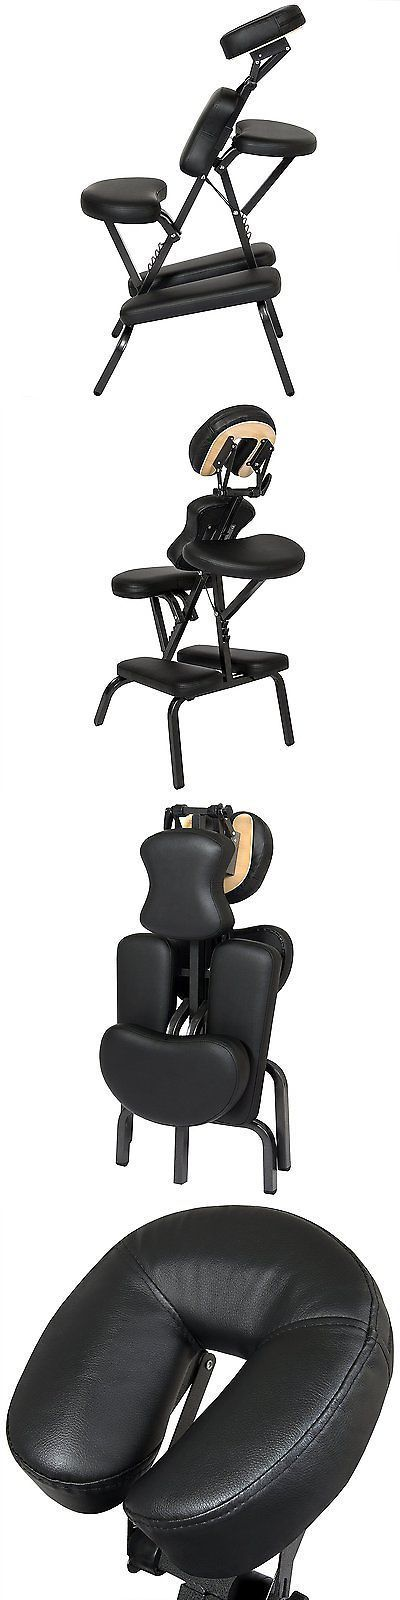 Massage Tables and Chairs: Massage Therapy Chair Table Portable Recliner Tattoo Artist Folding Best - Black BUY IT NOW ONLY: $112.77 #massagetablesportable